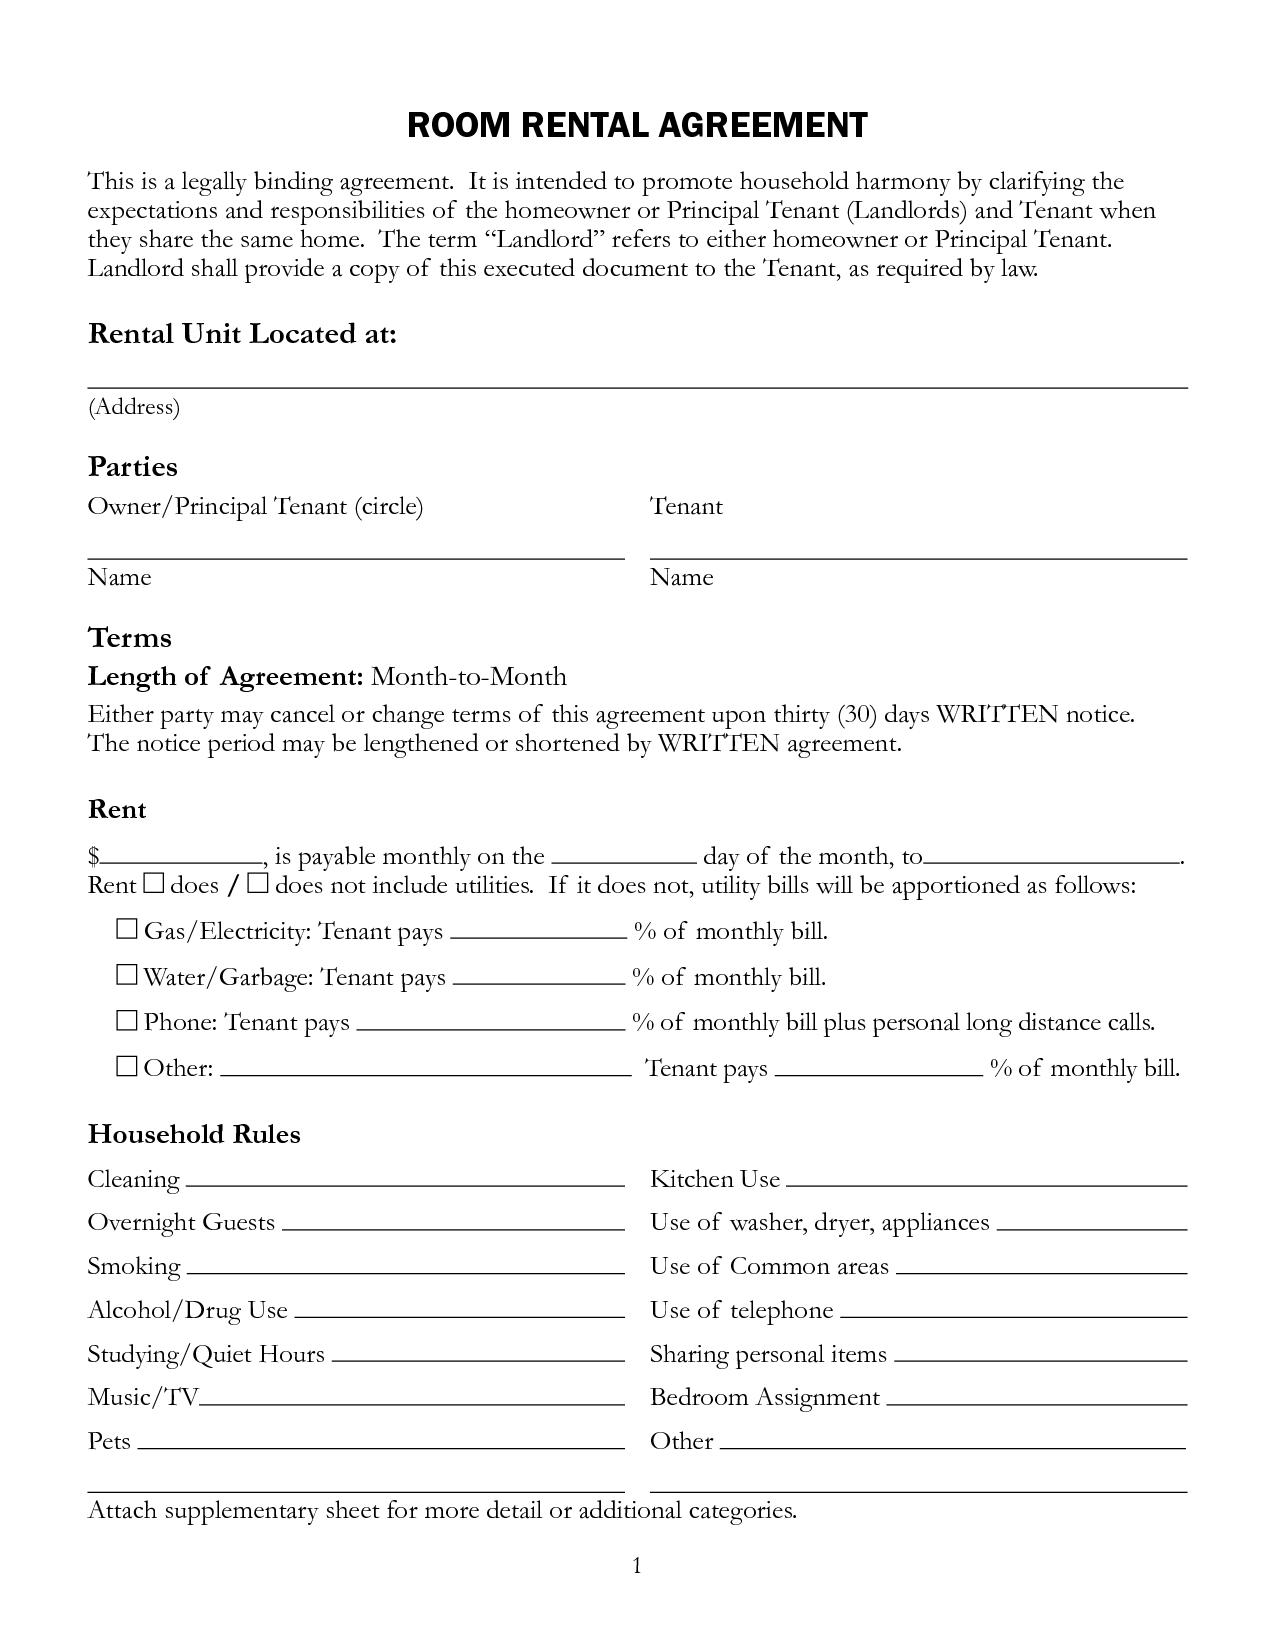 Commercial Lease Agreement Template Free Download South Africa